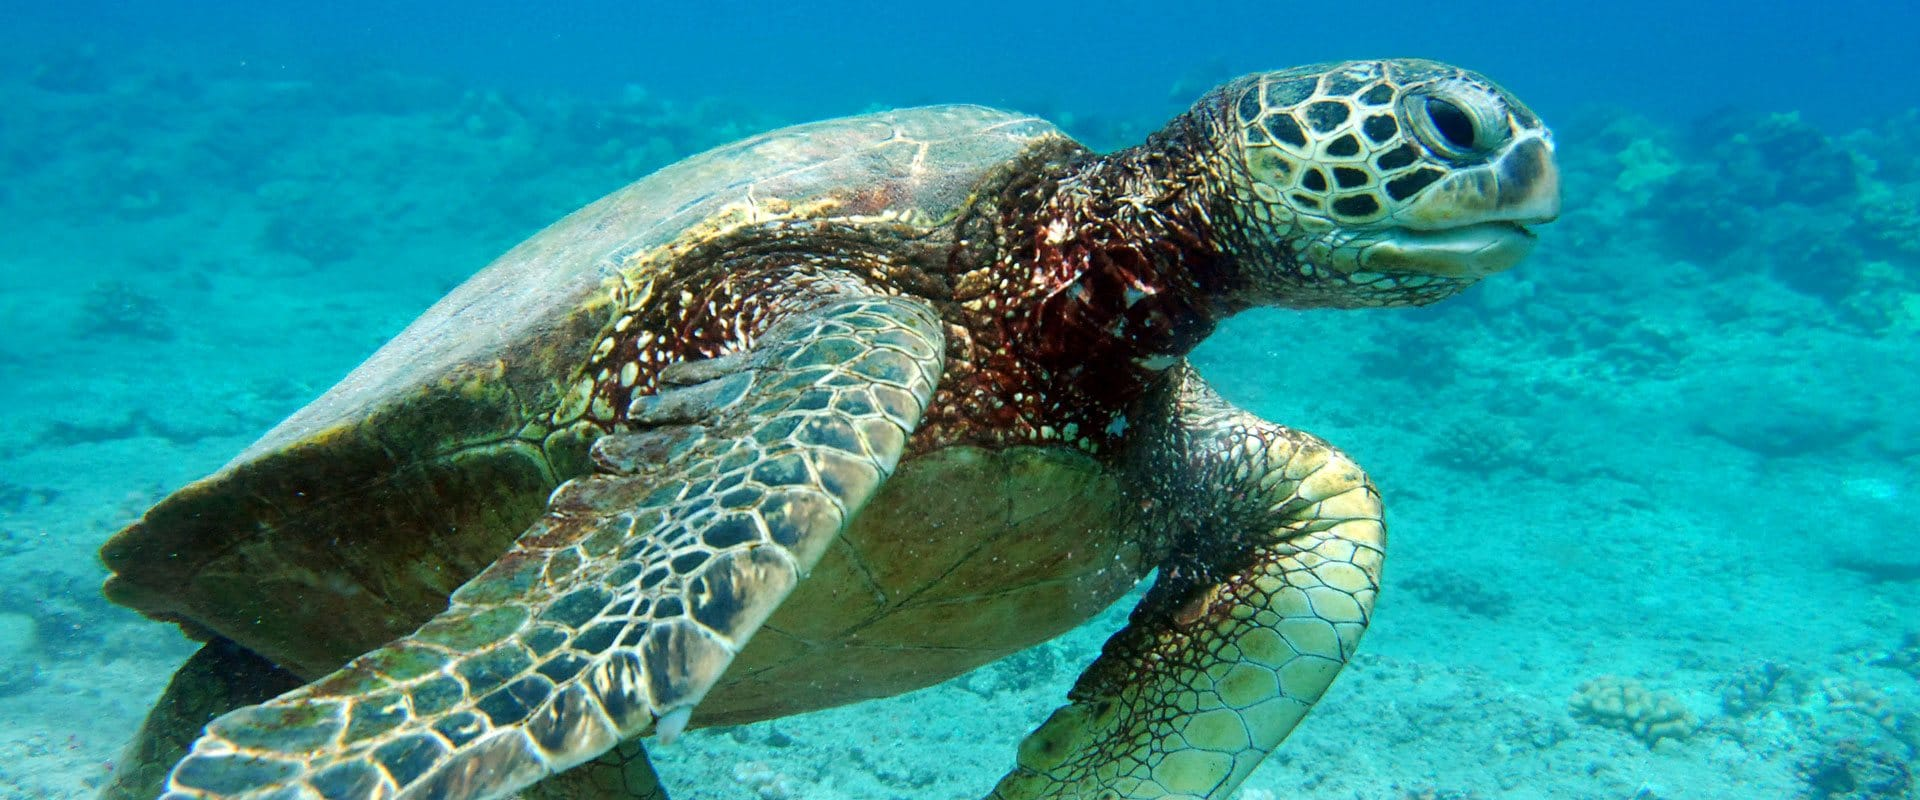 Experience swimming with Green sea turtles